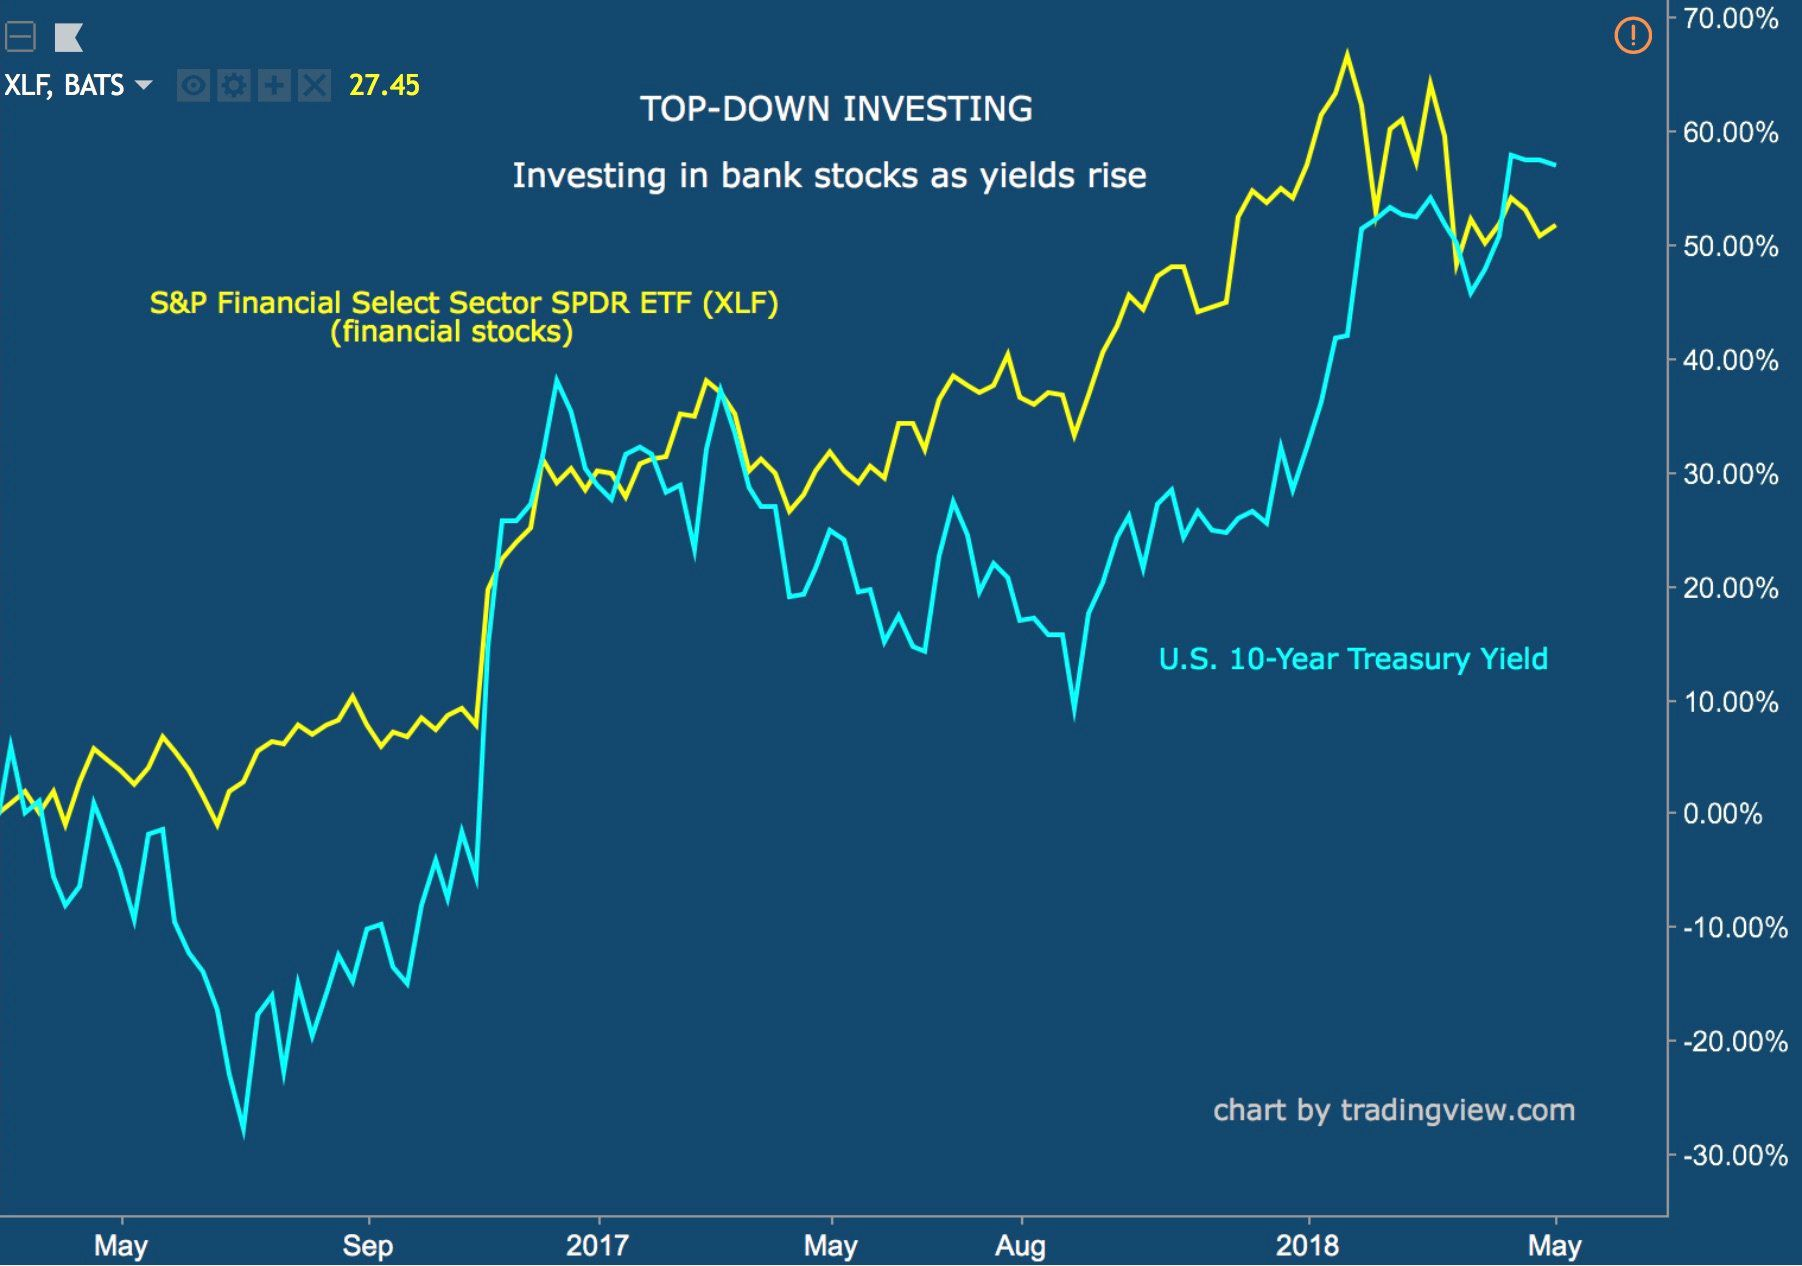 How Does Top-Down and Bottom-Up Investing Differ?